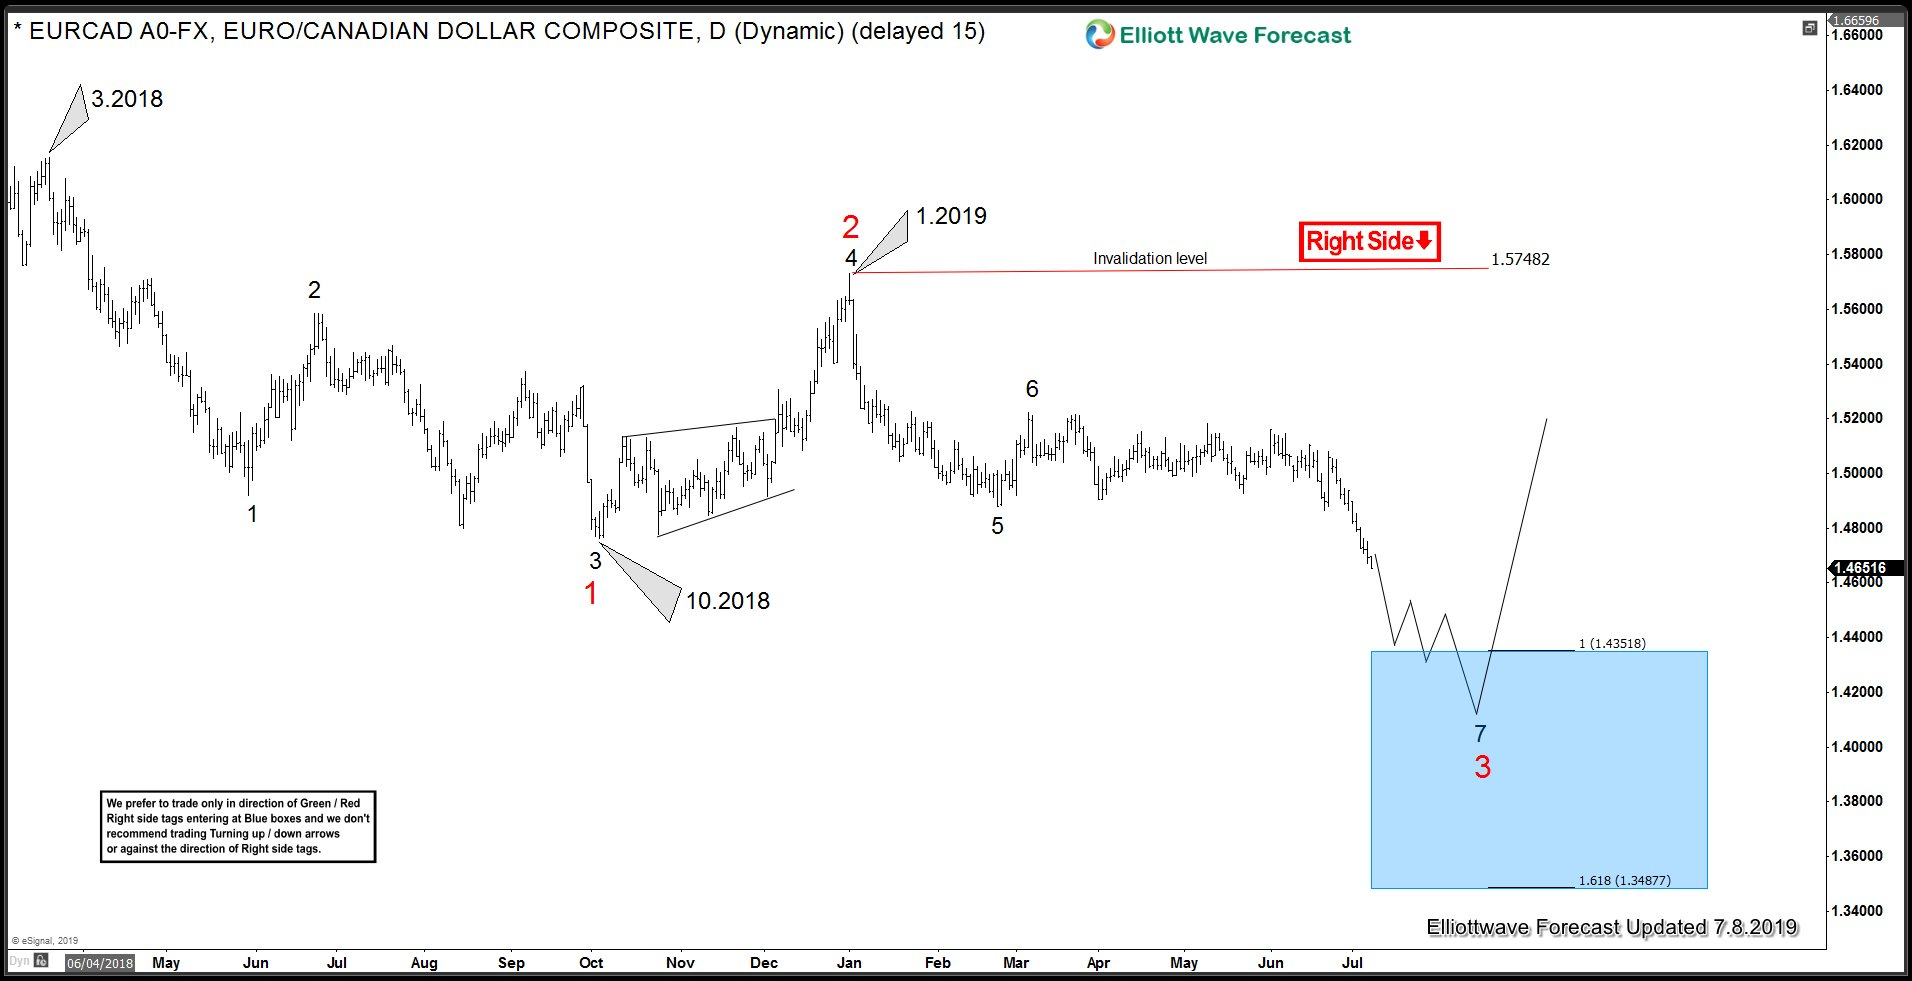 EUR Canadian Dollar Cycle from 3.2018 peak